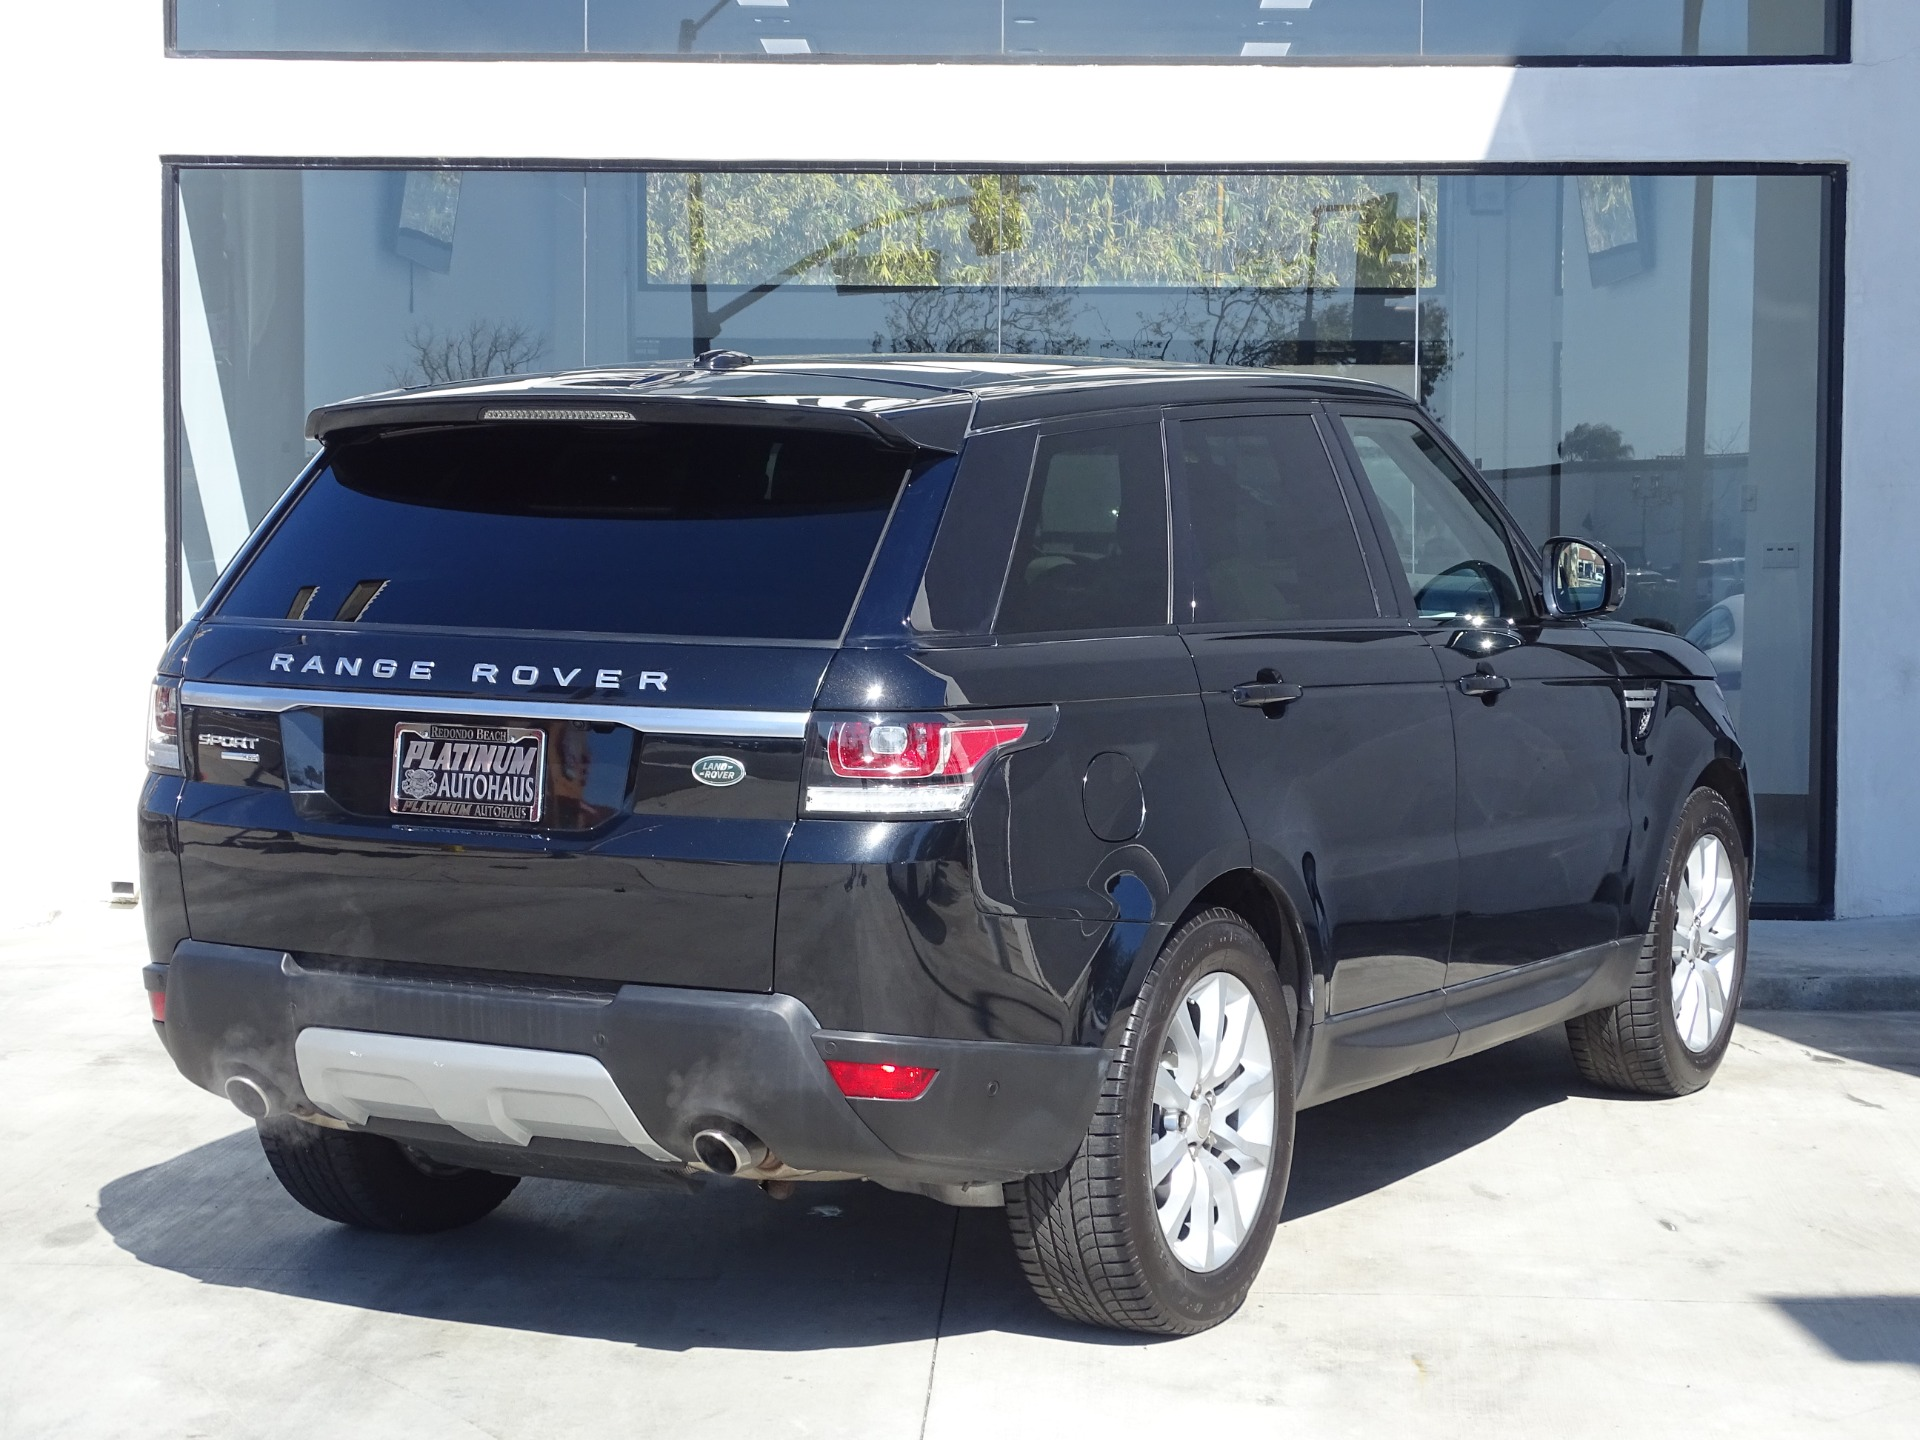 Used Range Rover For Sale Near Me >> 2015 Land Rover Range Rover Sport HSE *** LOW MILES ...